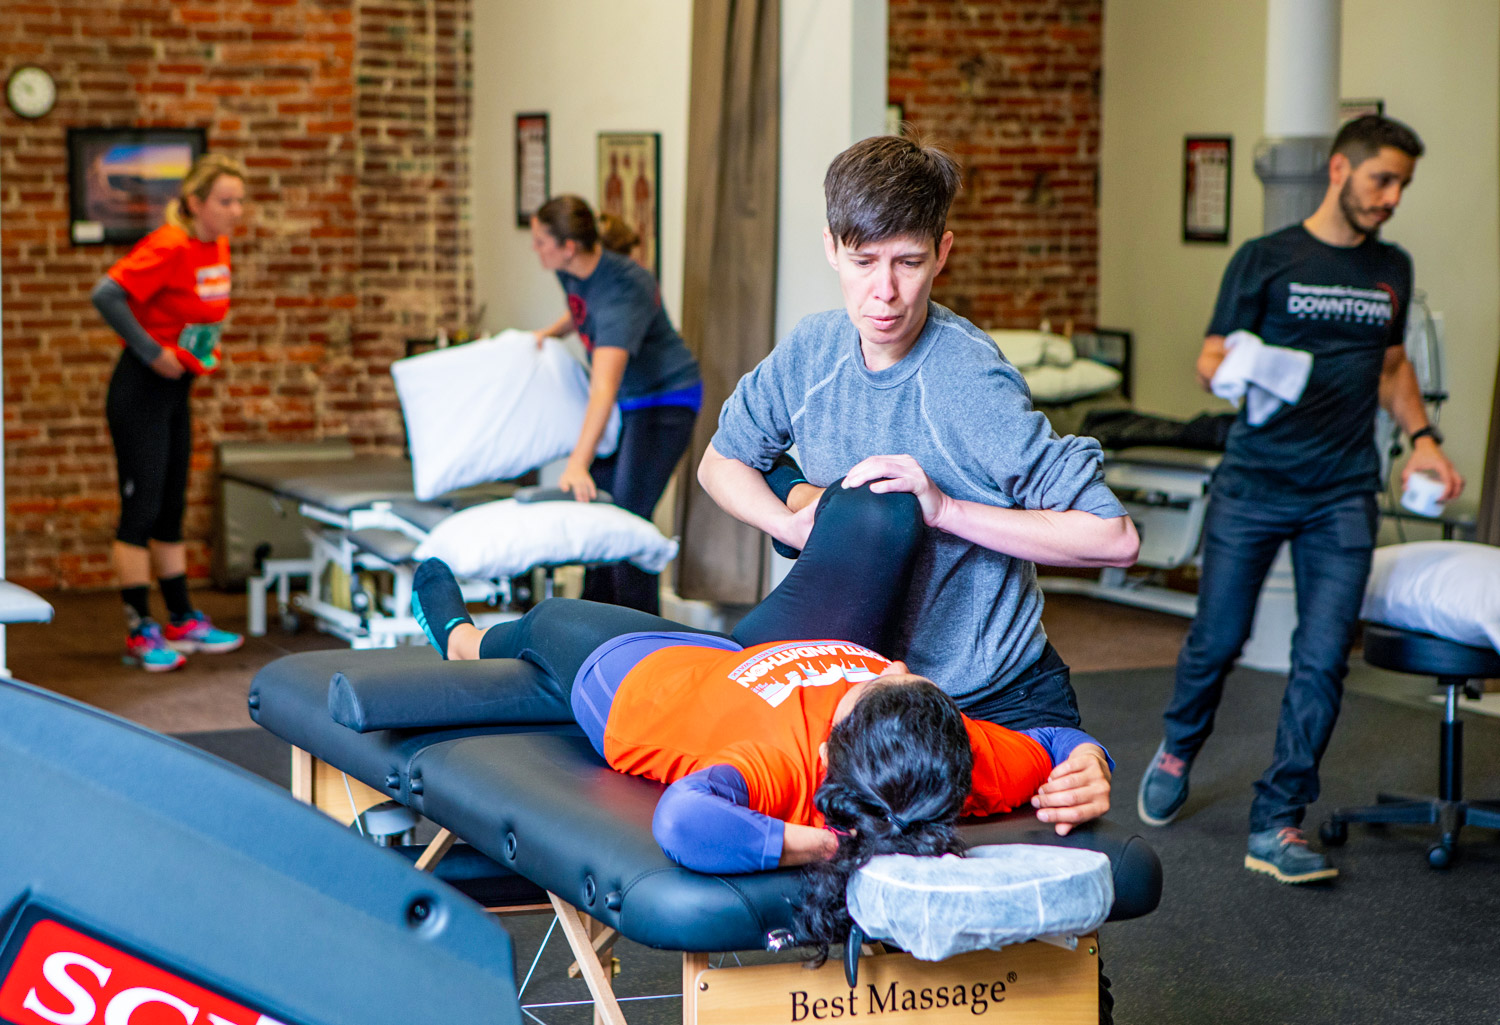 Chiropractor giving massage to a patient lying on a bed